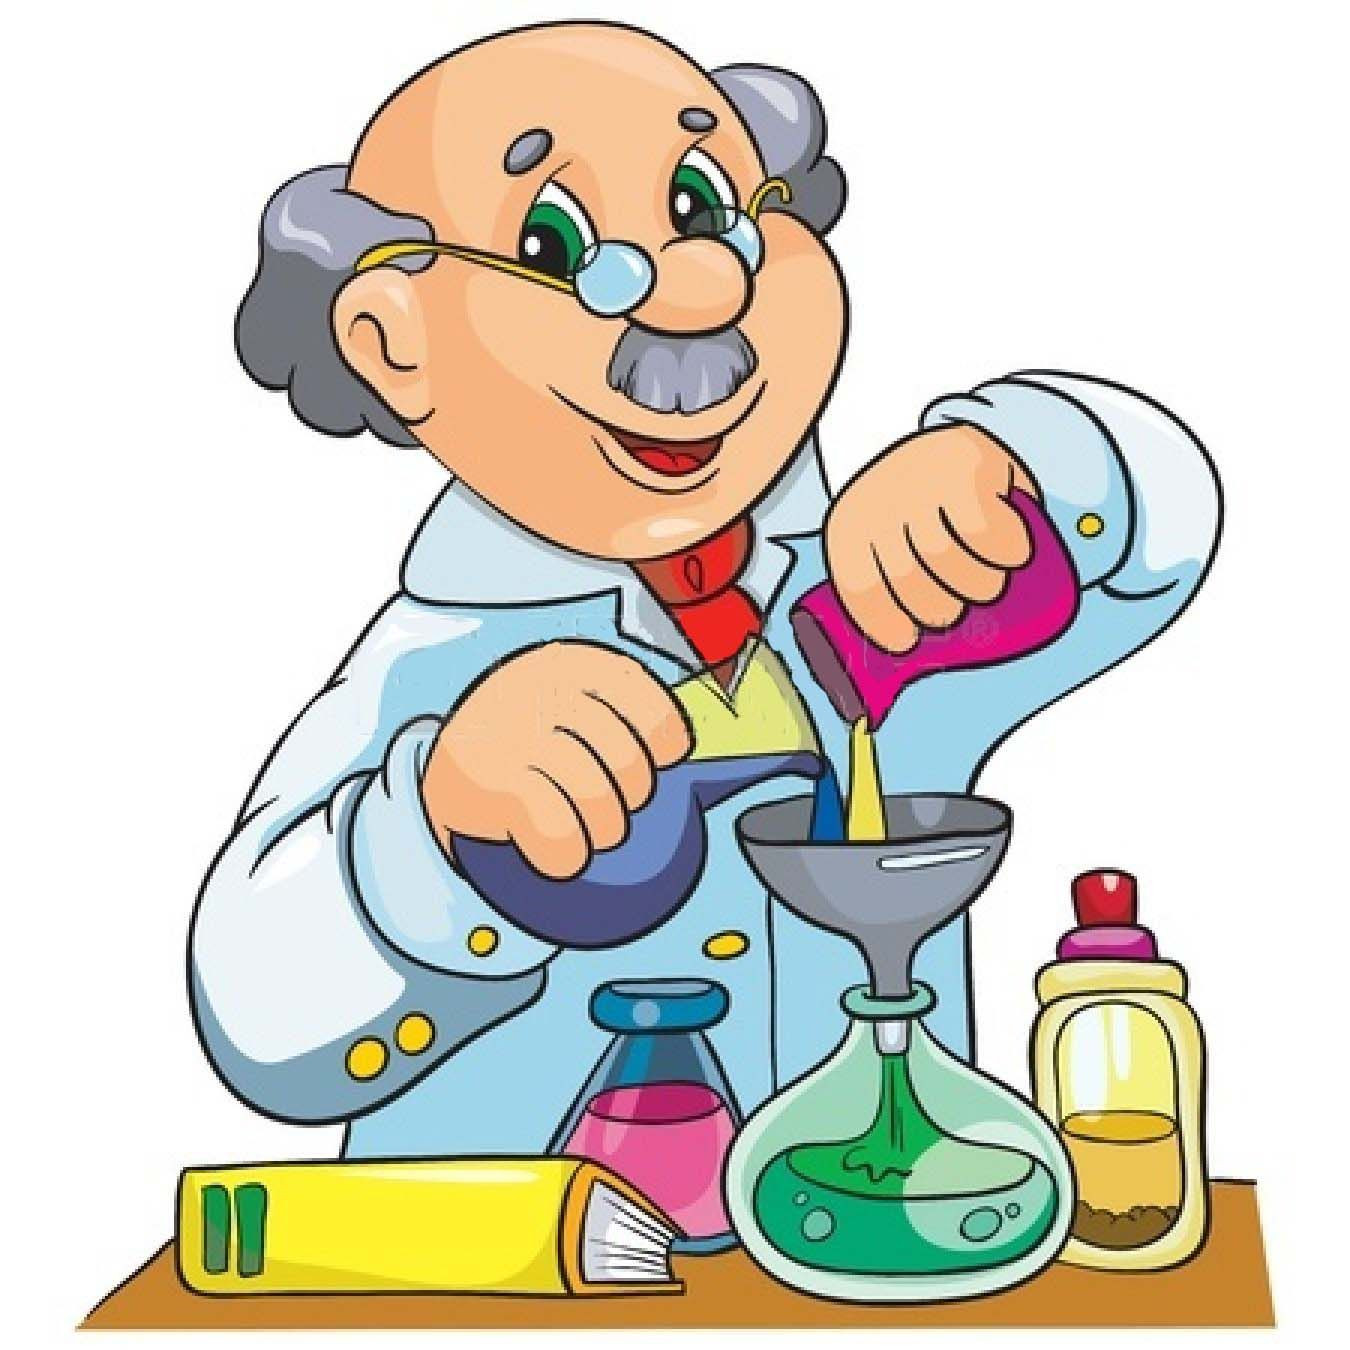 Professor cliparts science chemistry. Chemical clipart cartoon